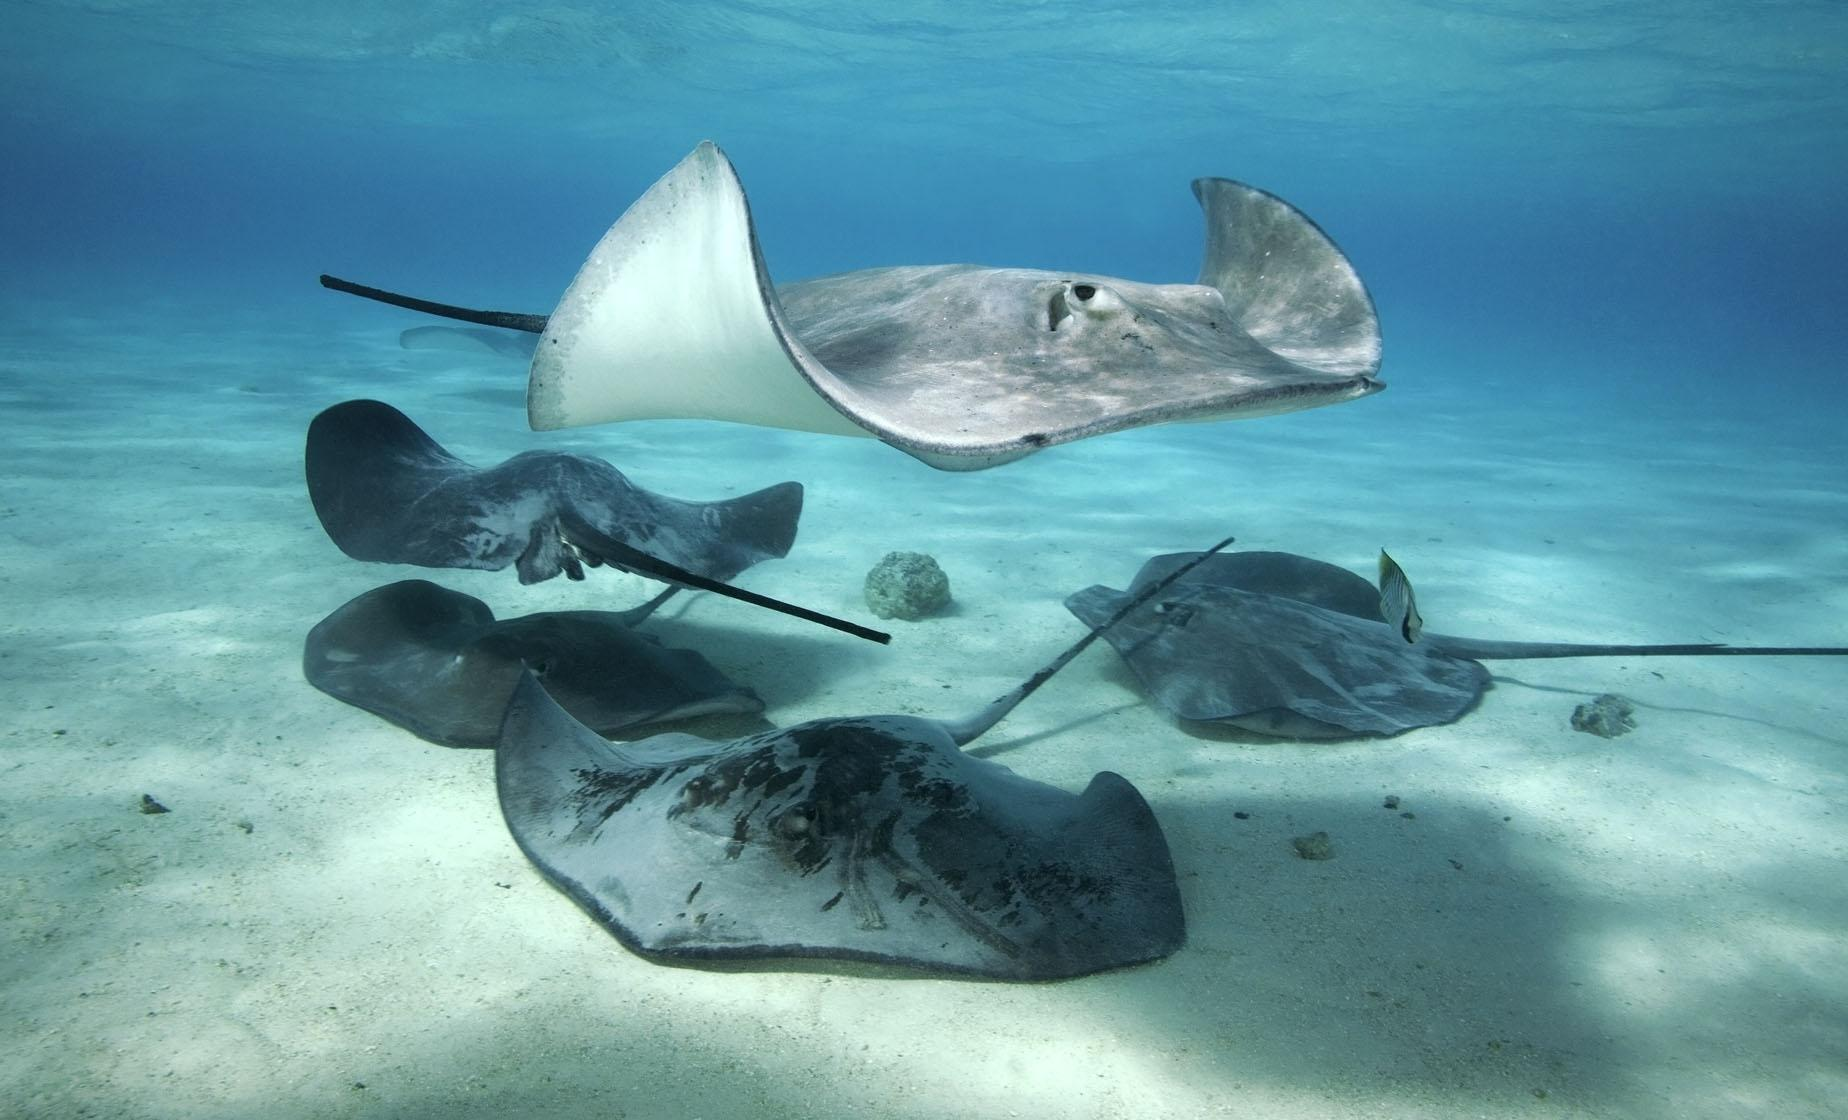 Stingray City by Jetski and Starfish Beach